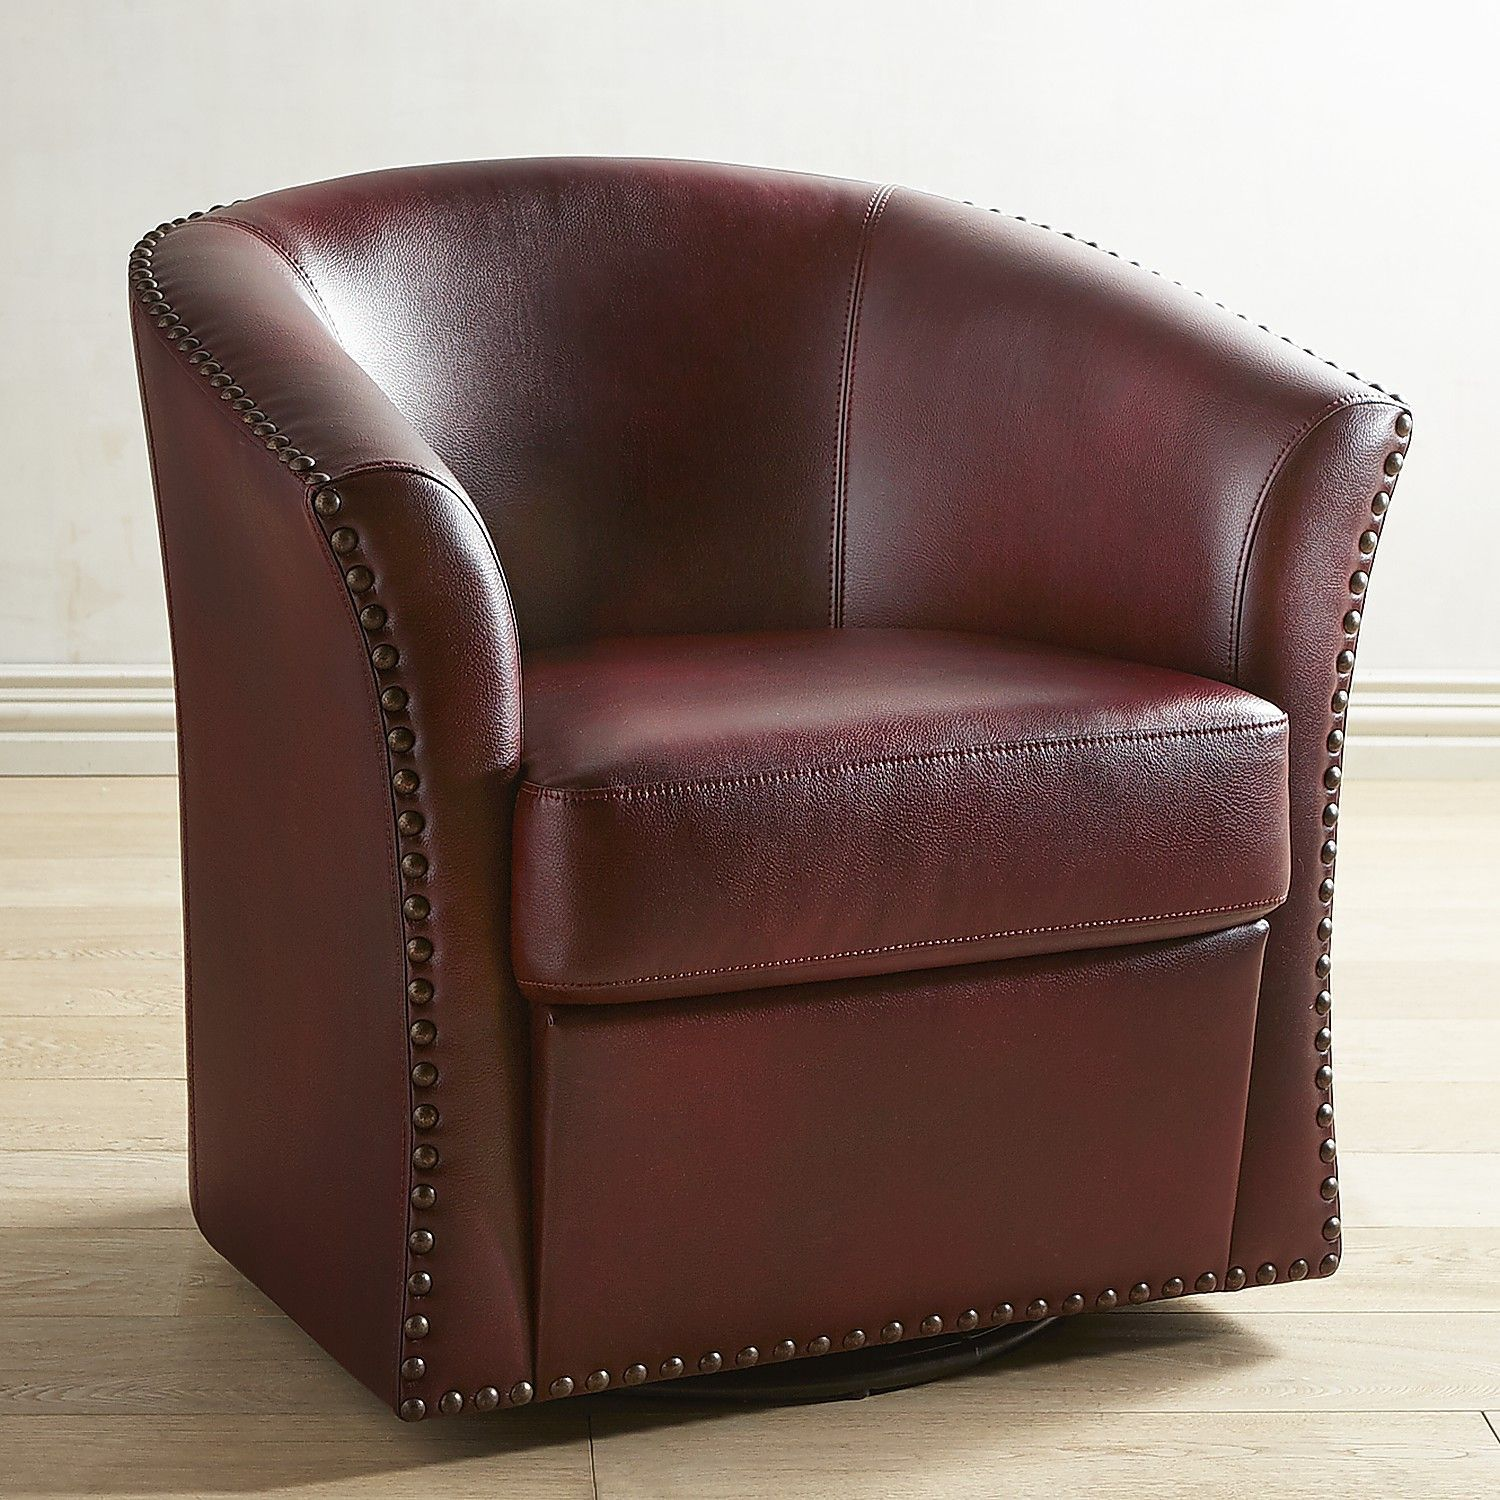 Best Wells Cranberry Red Swivel Chair Burgundy Comfy Leather 640 x 480